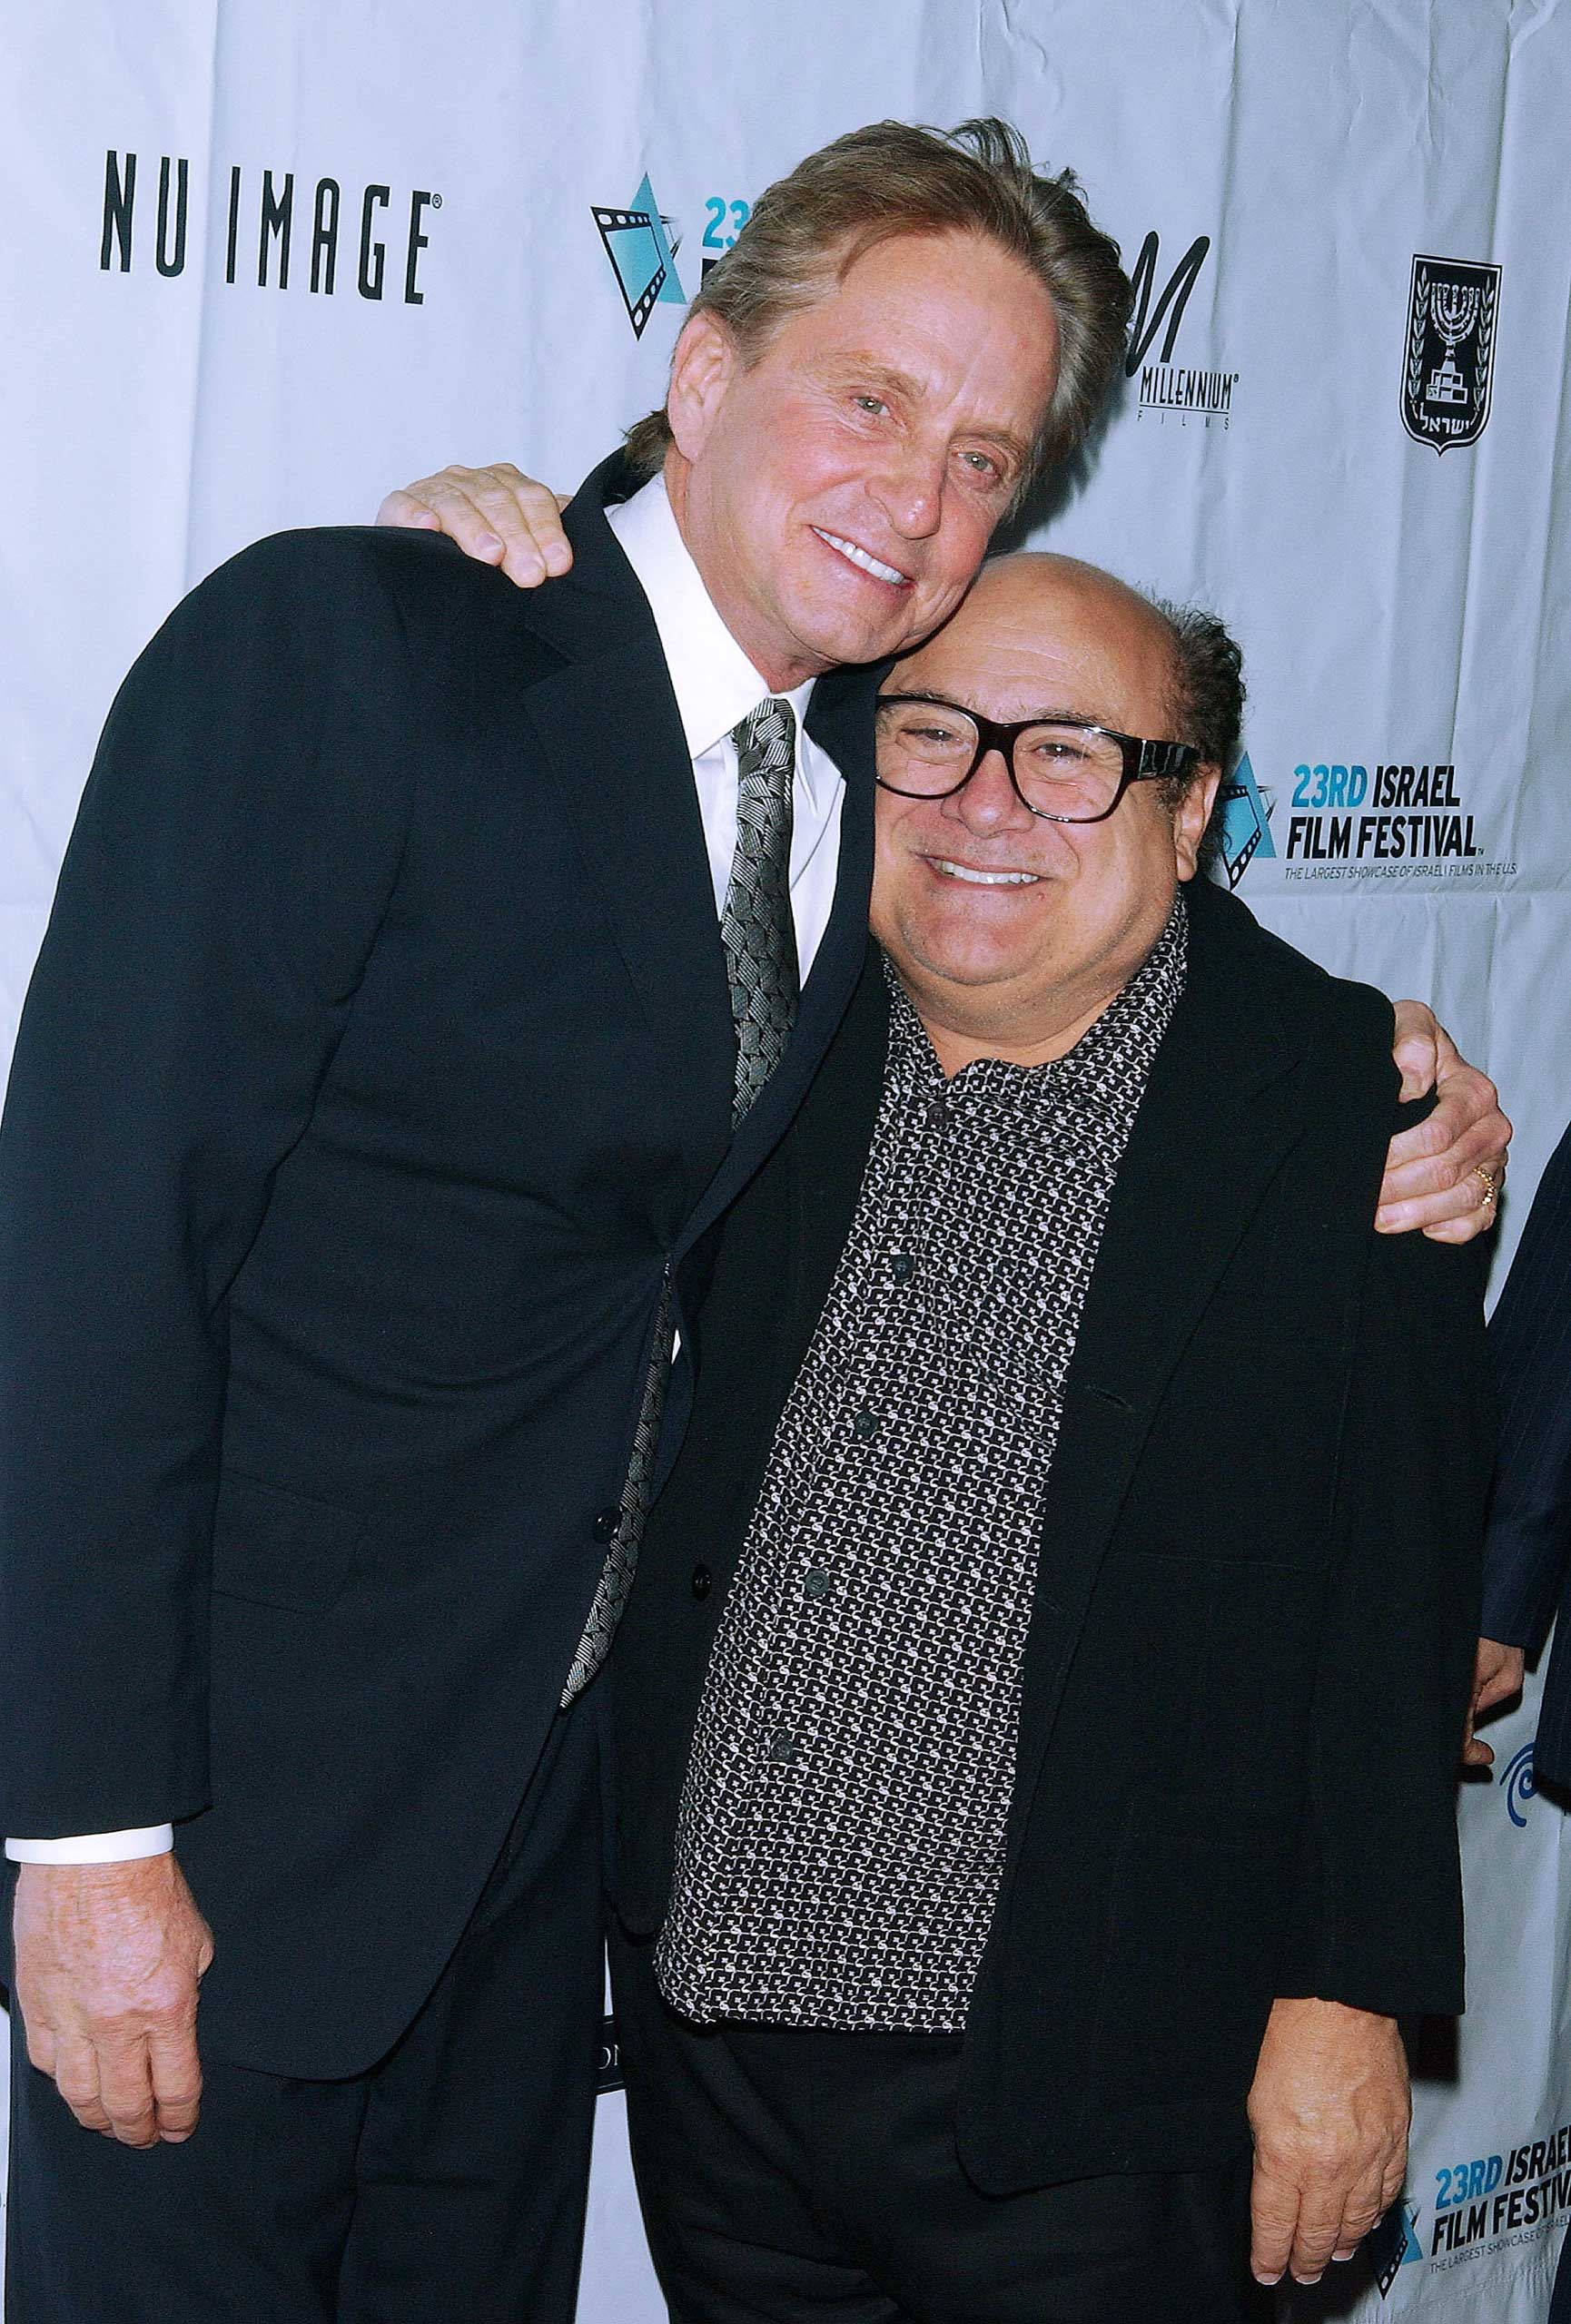 Michael Douglas and Danny DeVito: another roommate pair for the ages.